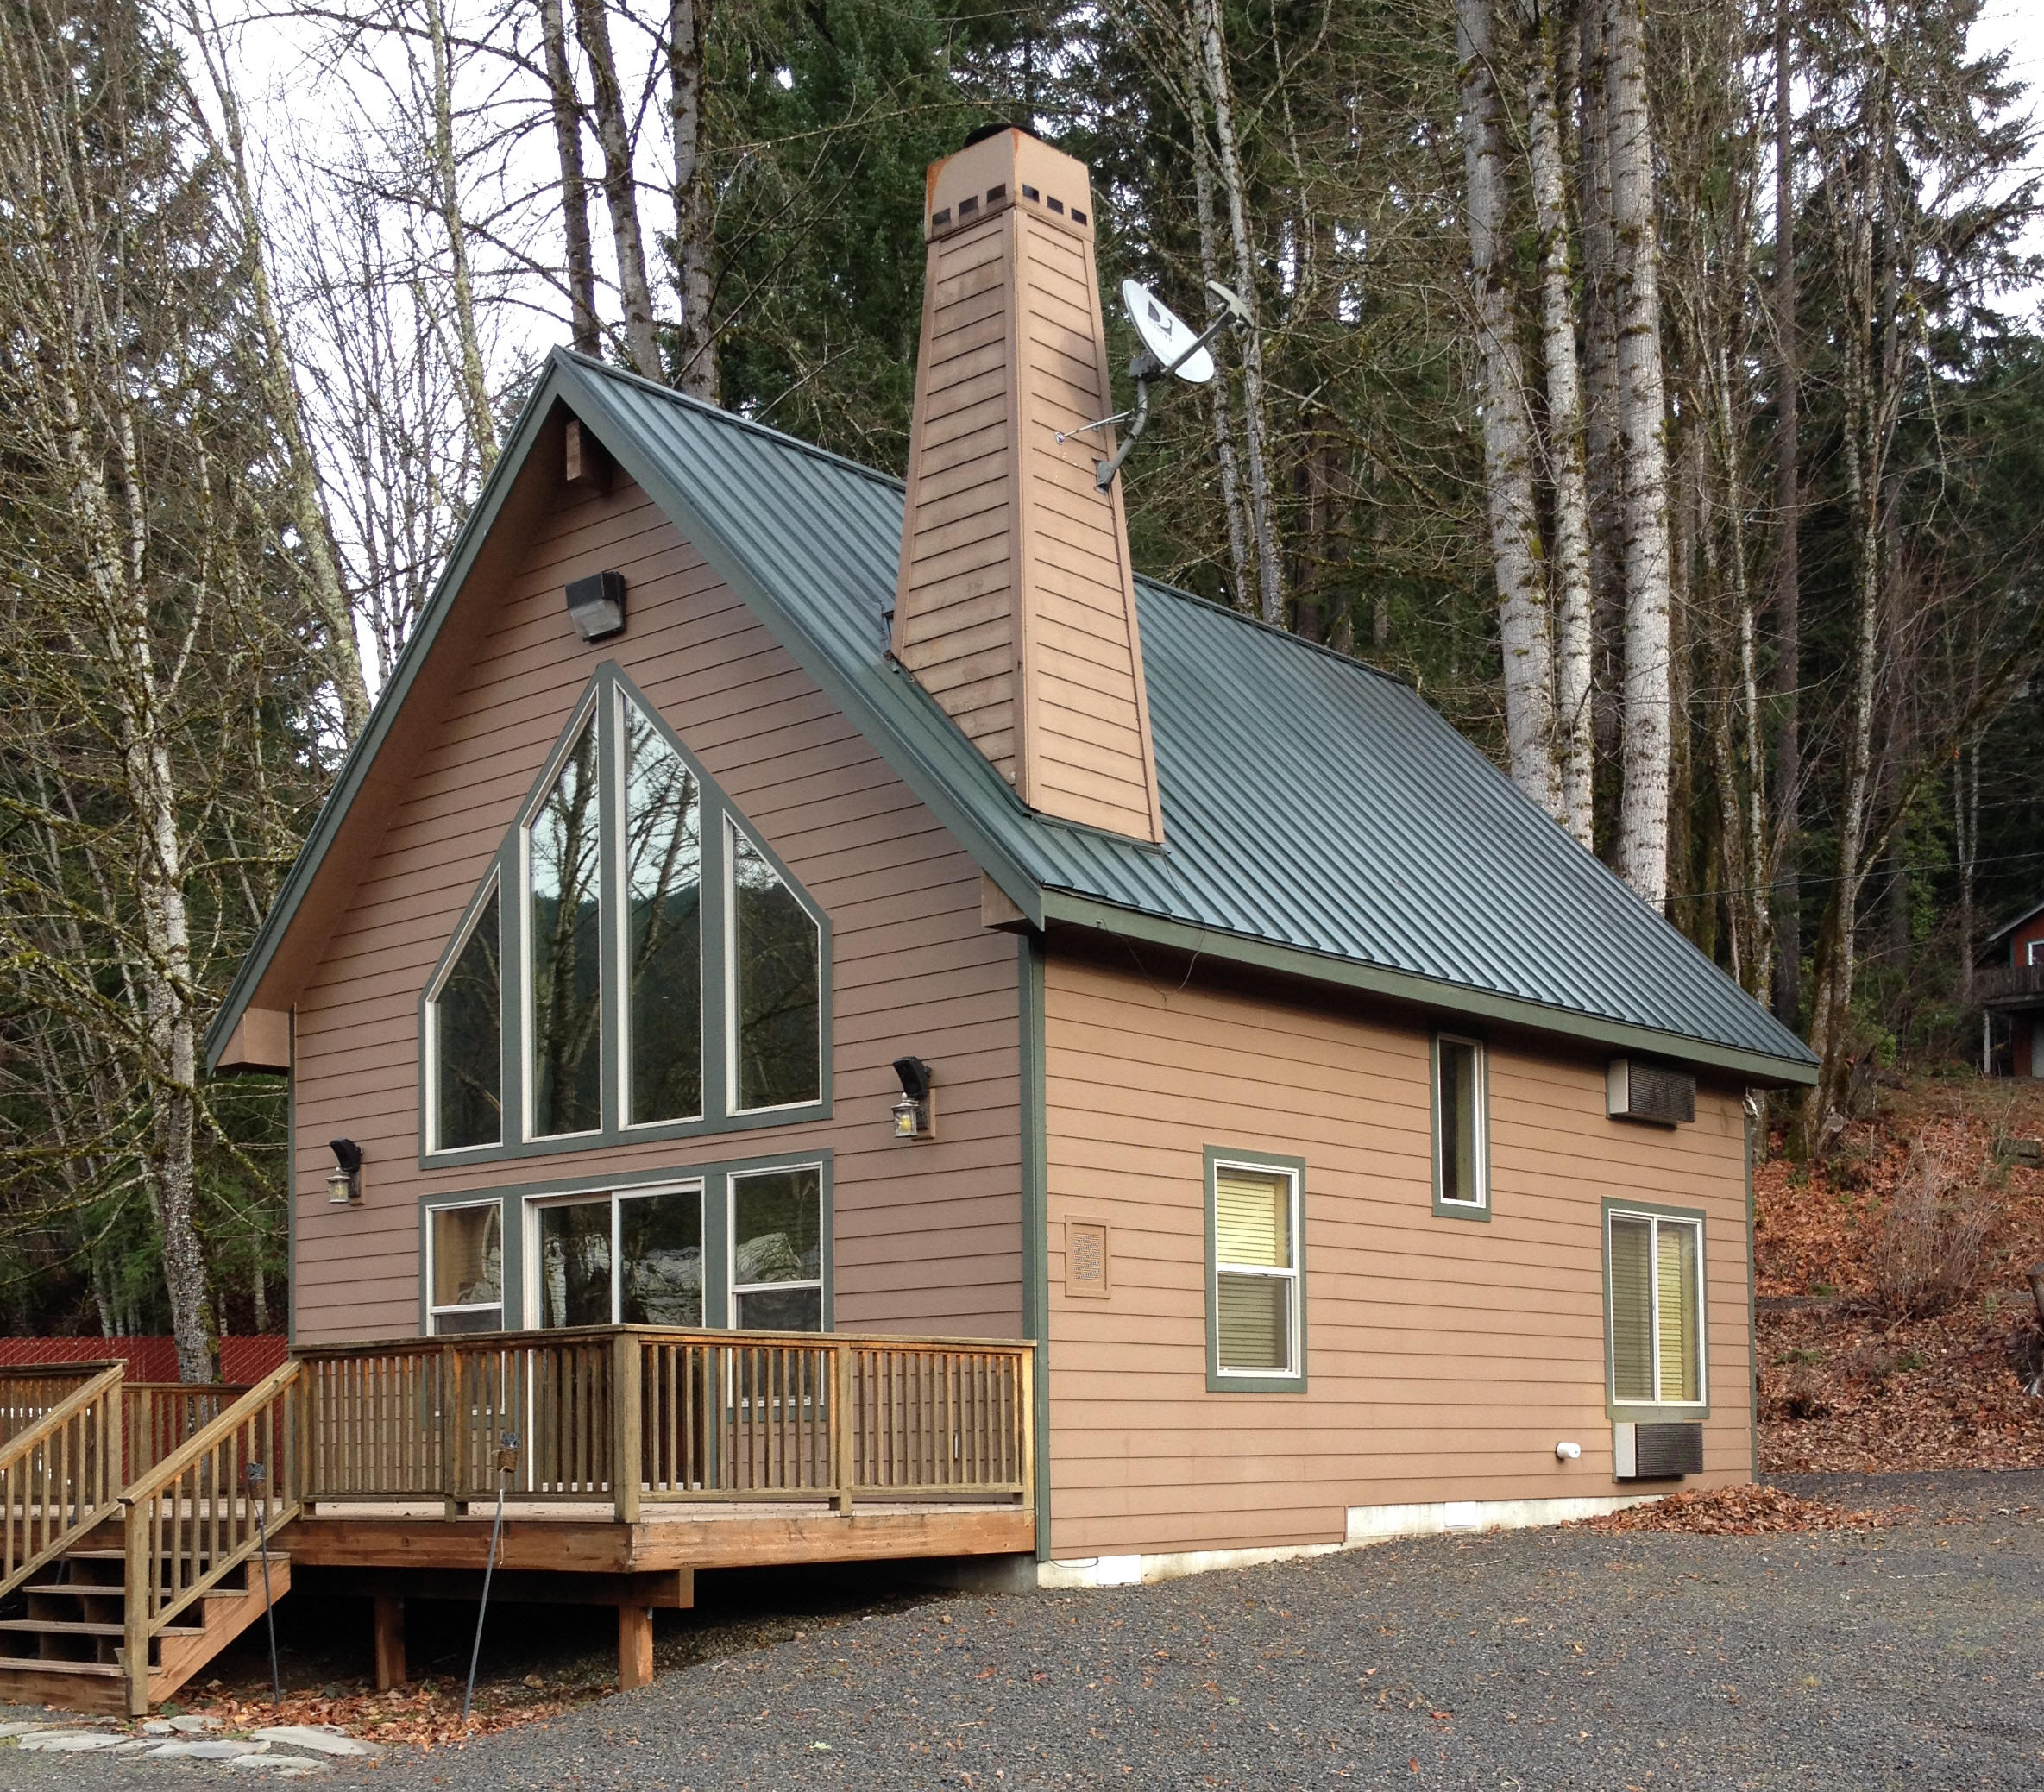 Building My House cabins, small houses, cottages-bhs contracting-oregon contractor